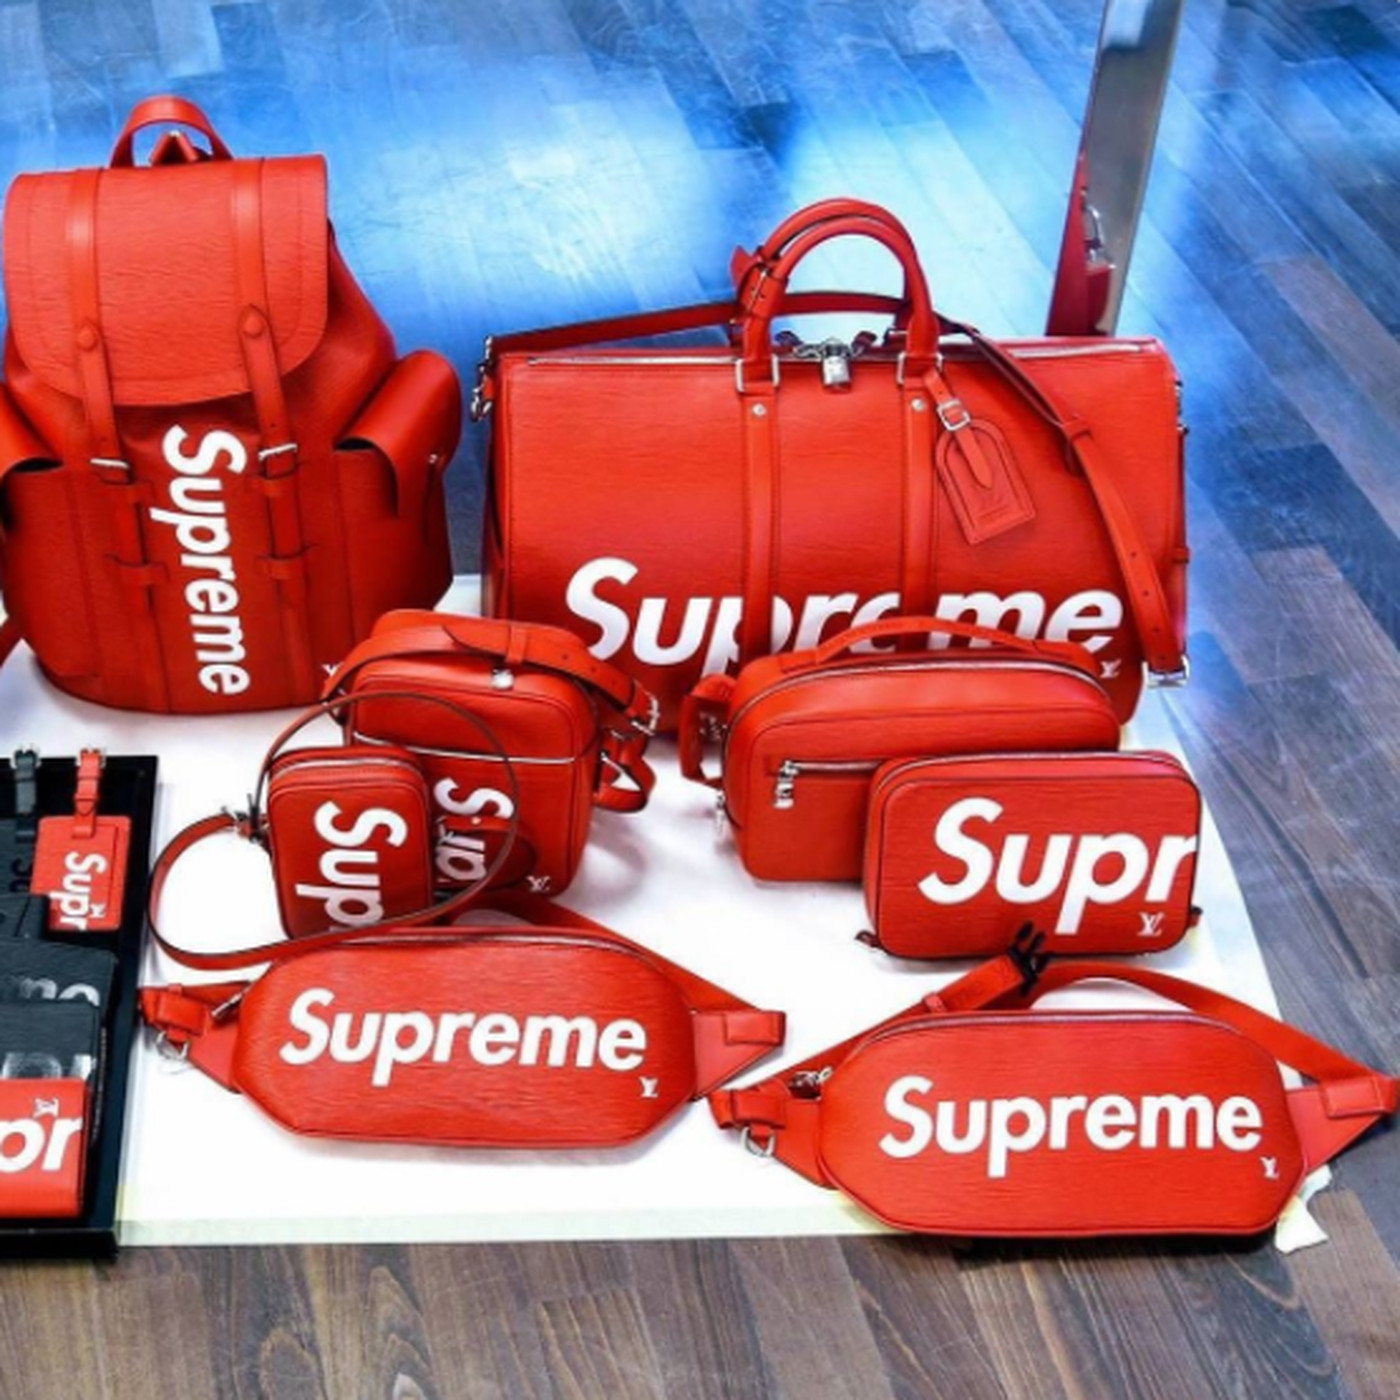 0ca3973ca Louis Vuitton's Supreme Collaboration Is Here - Racked